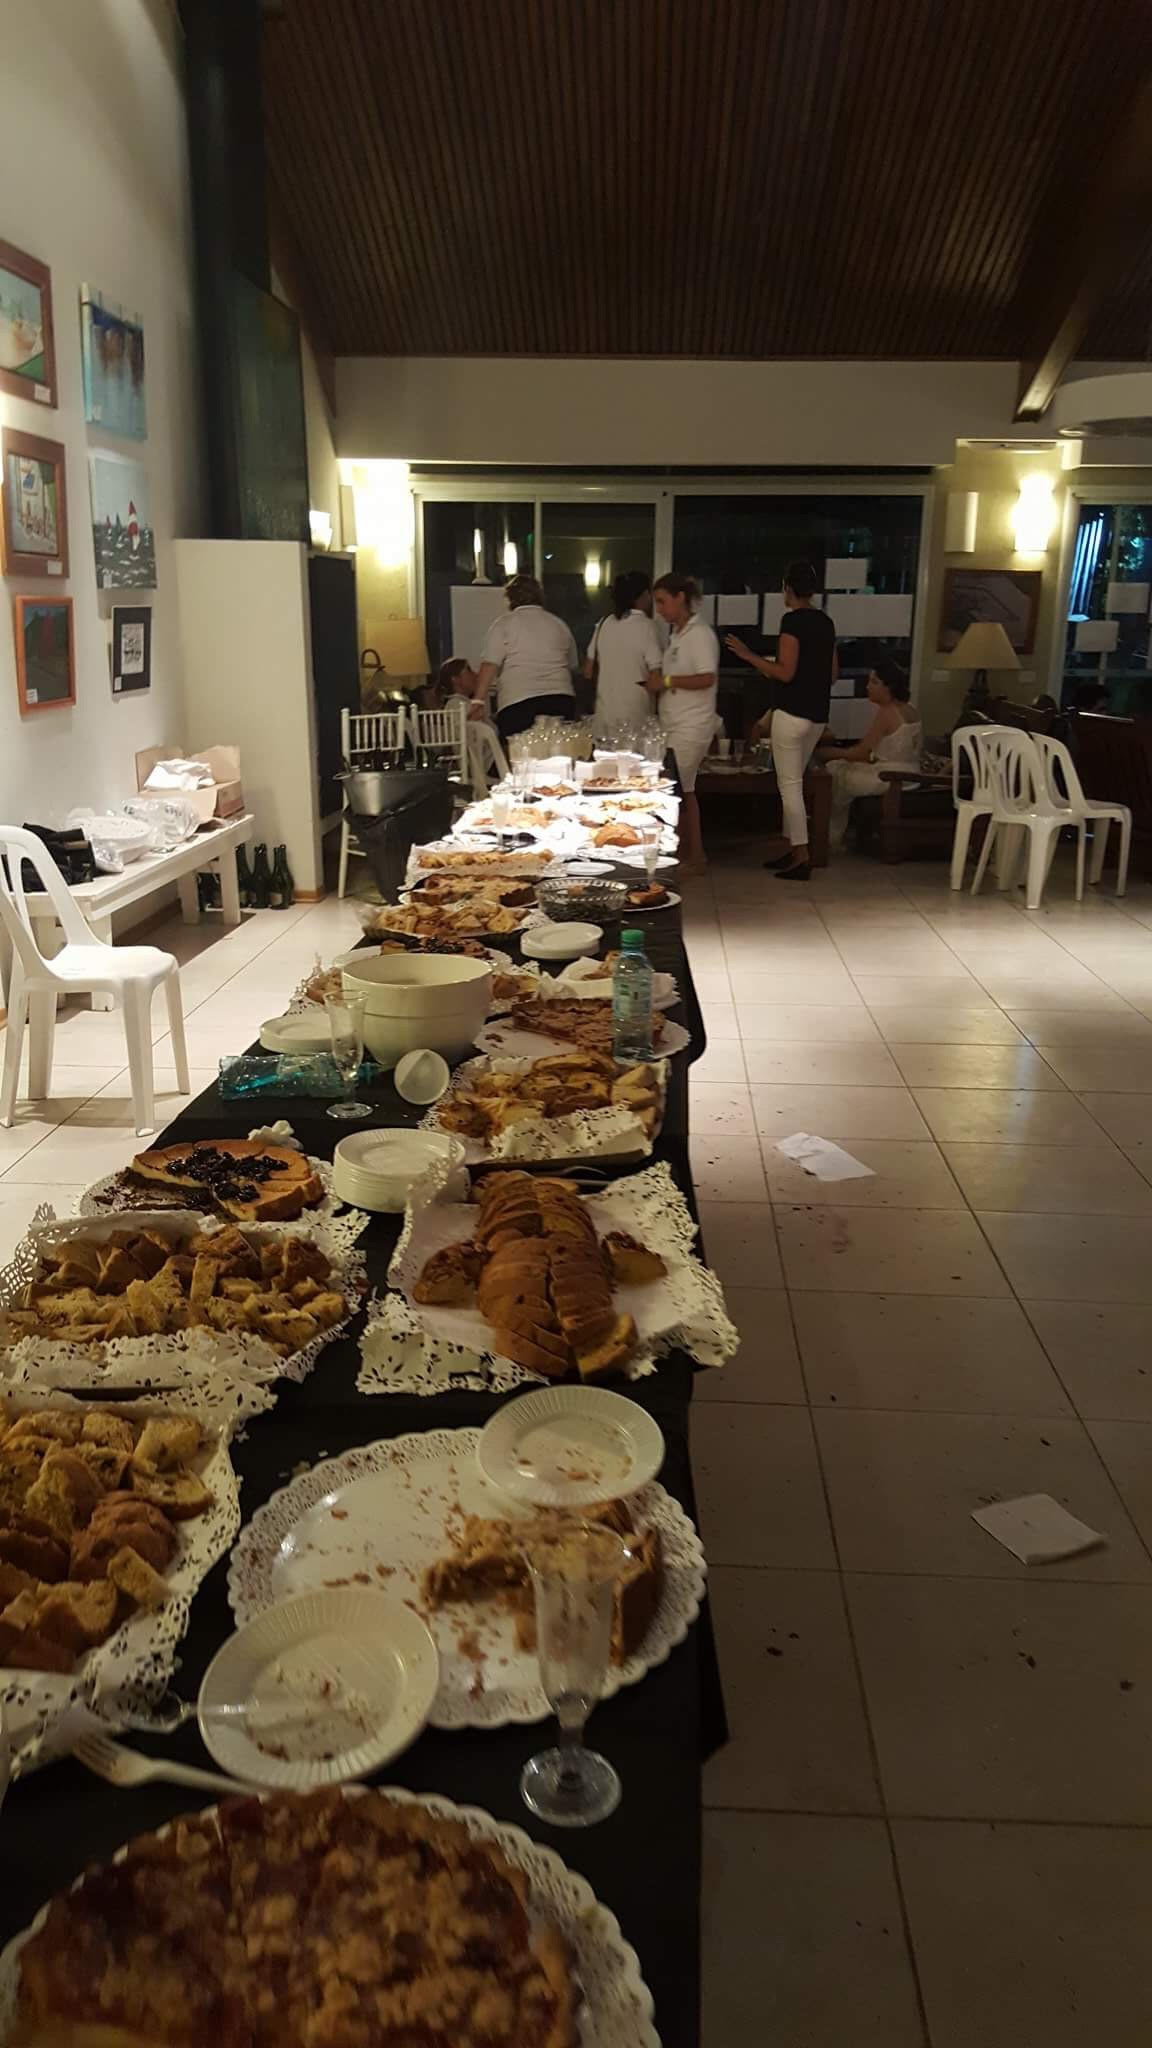 The food at the New Years Eve party the team attended.